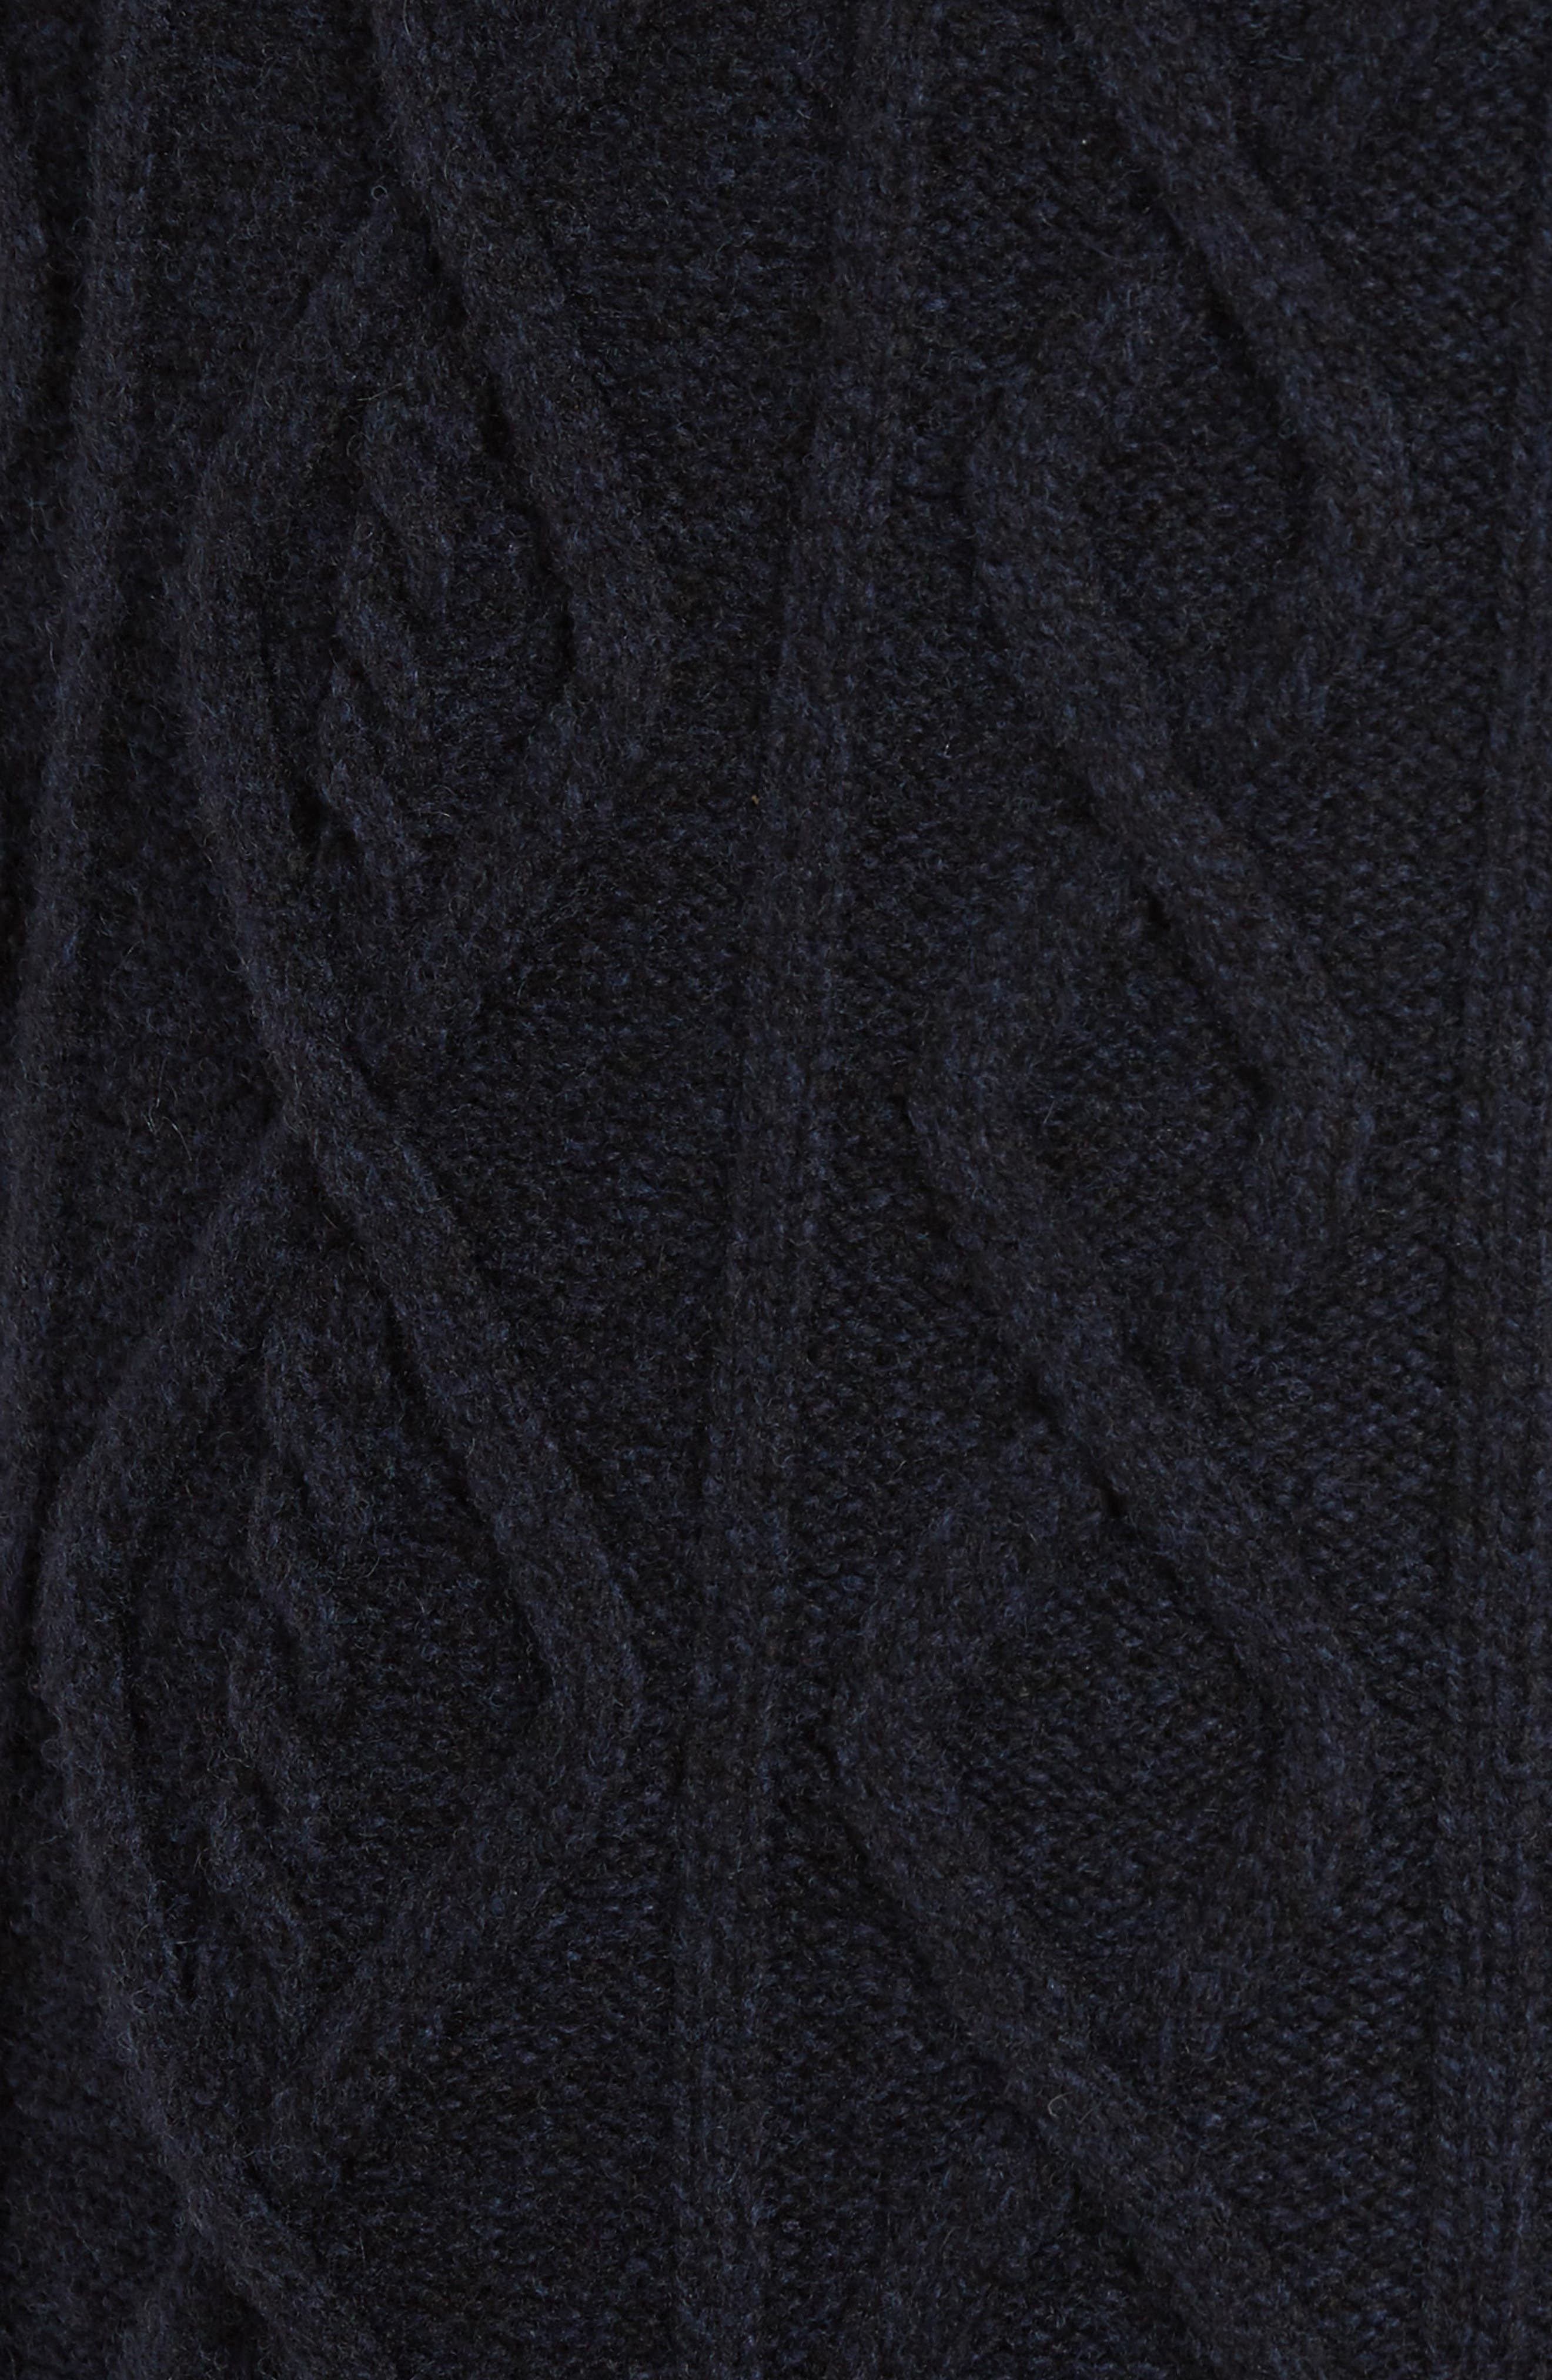 Cape Scoresby Wool Sweater,                             Alternate thumbnail 5, color,                             Navy